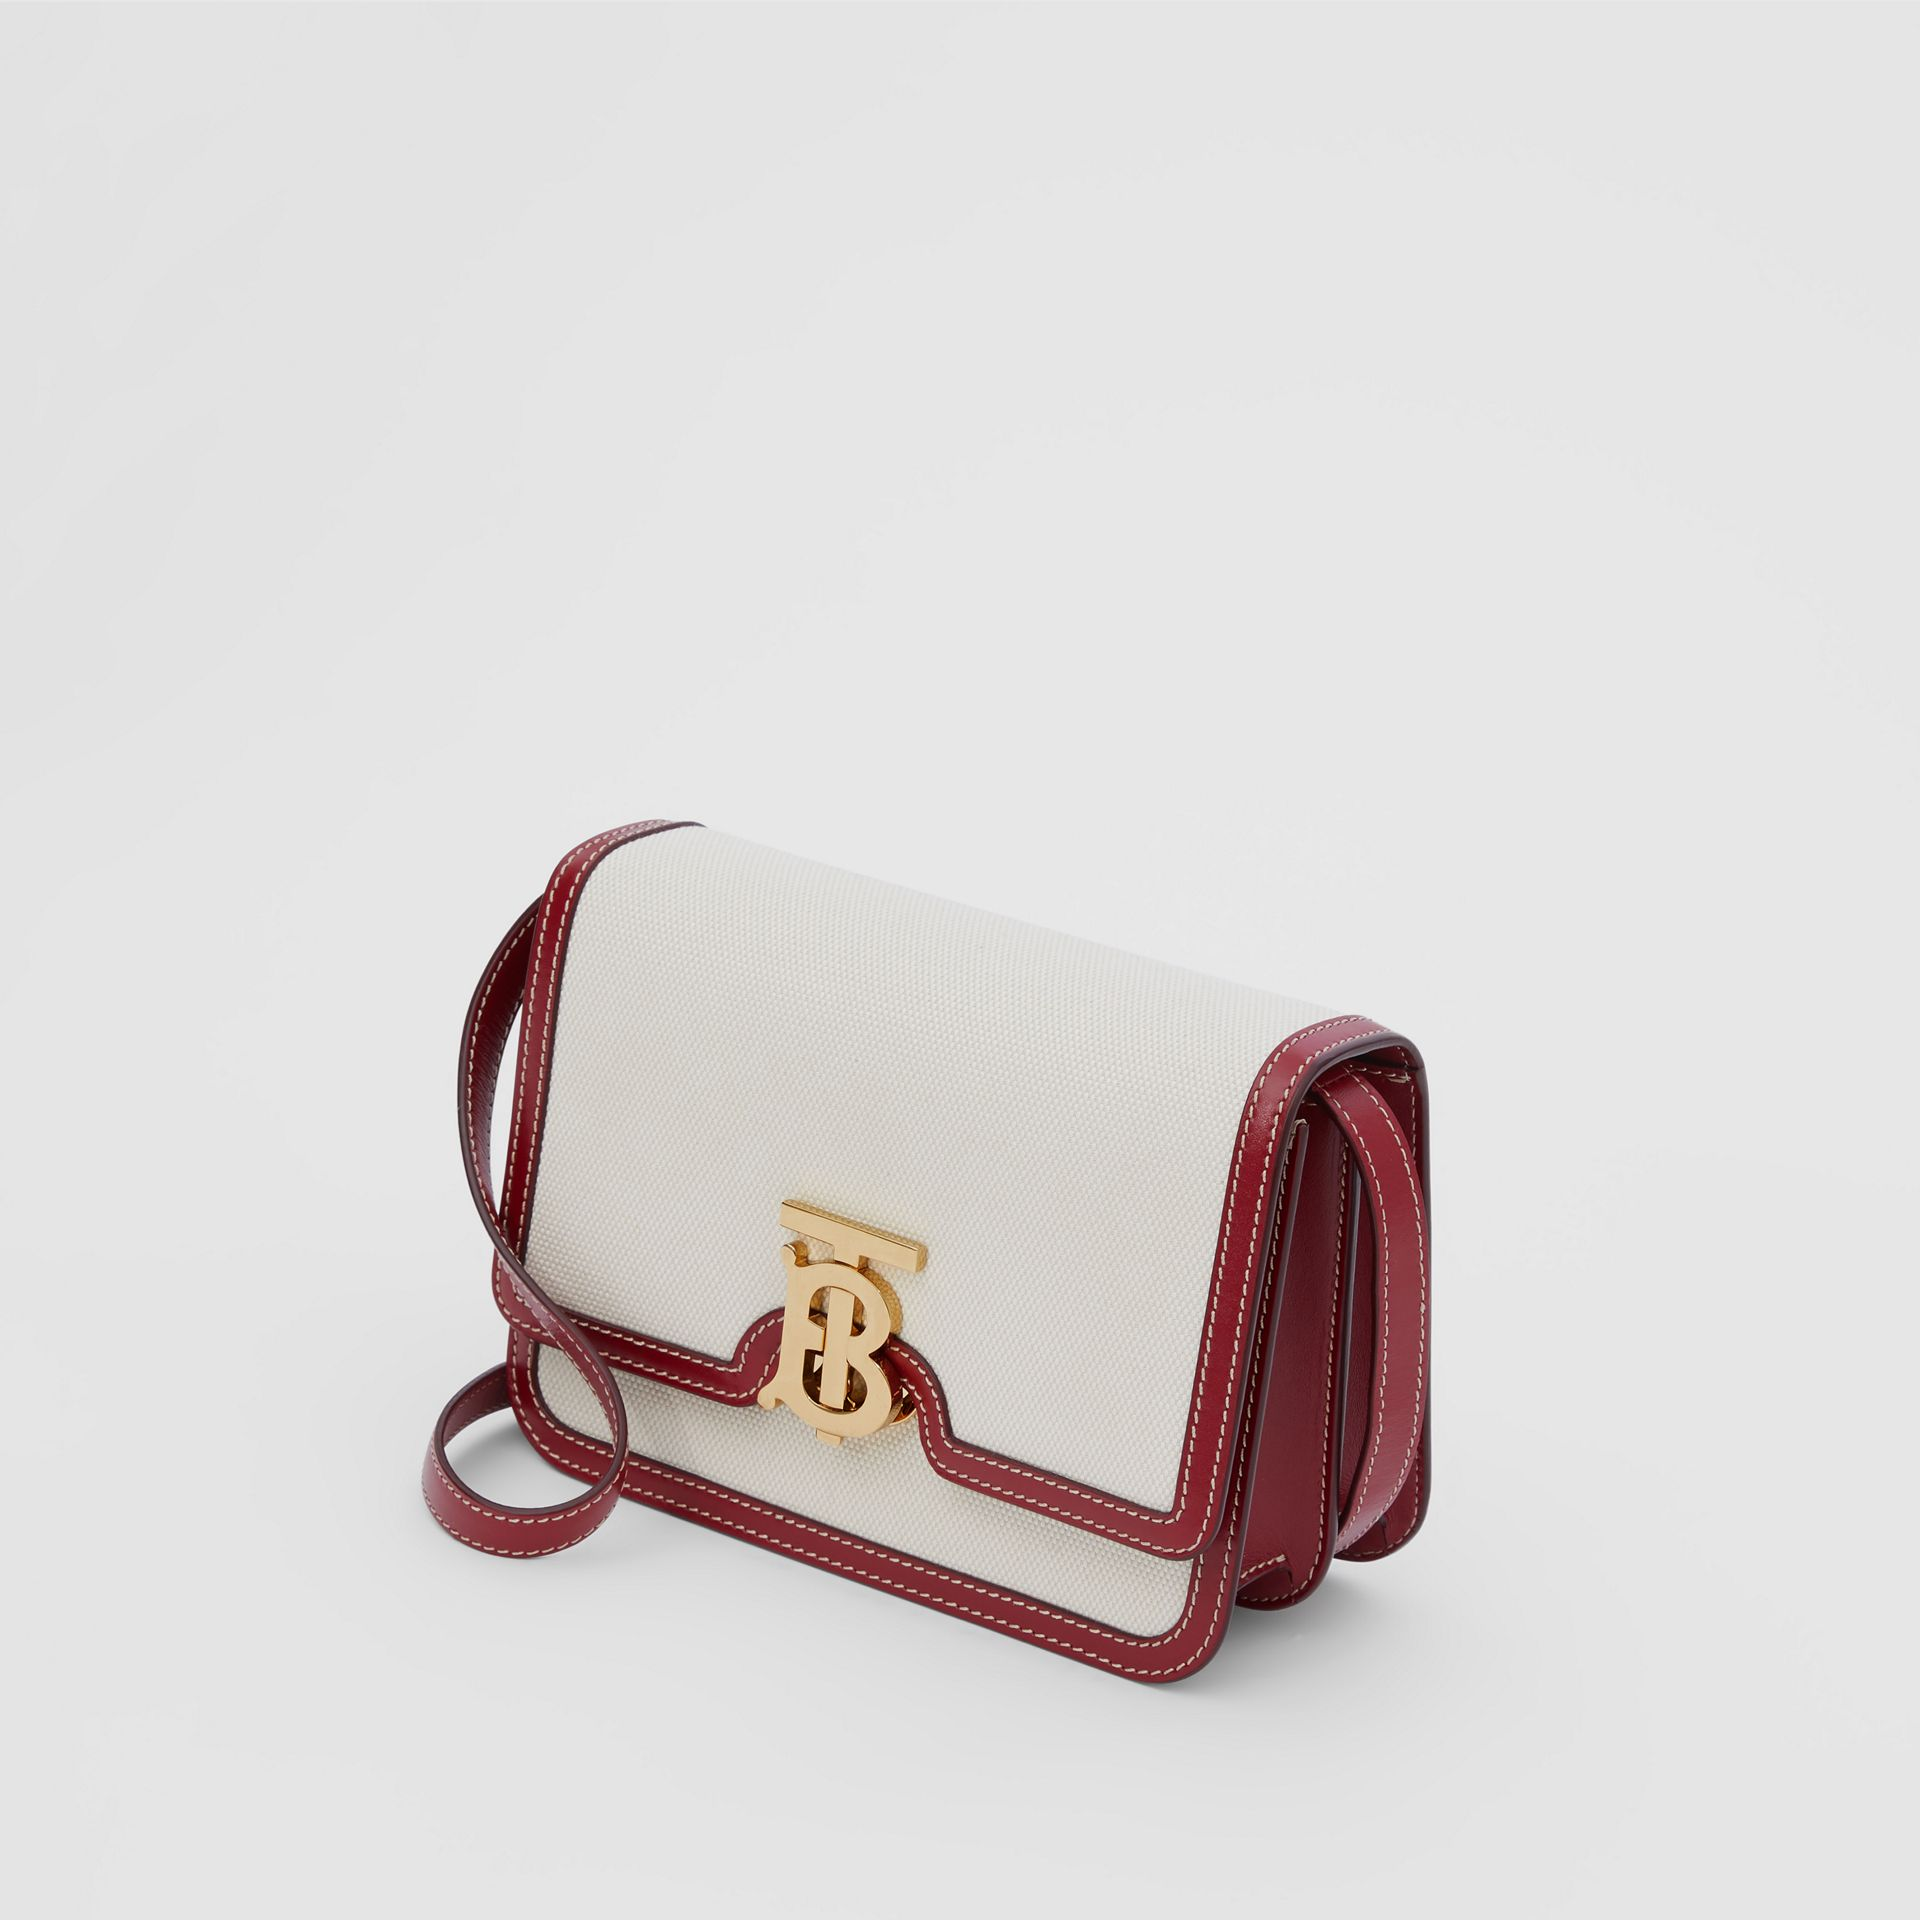 Small Two-tone Canvas and Leather TB Bag in Natural/dark Carmine - Women | Burberry - gallery image 2